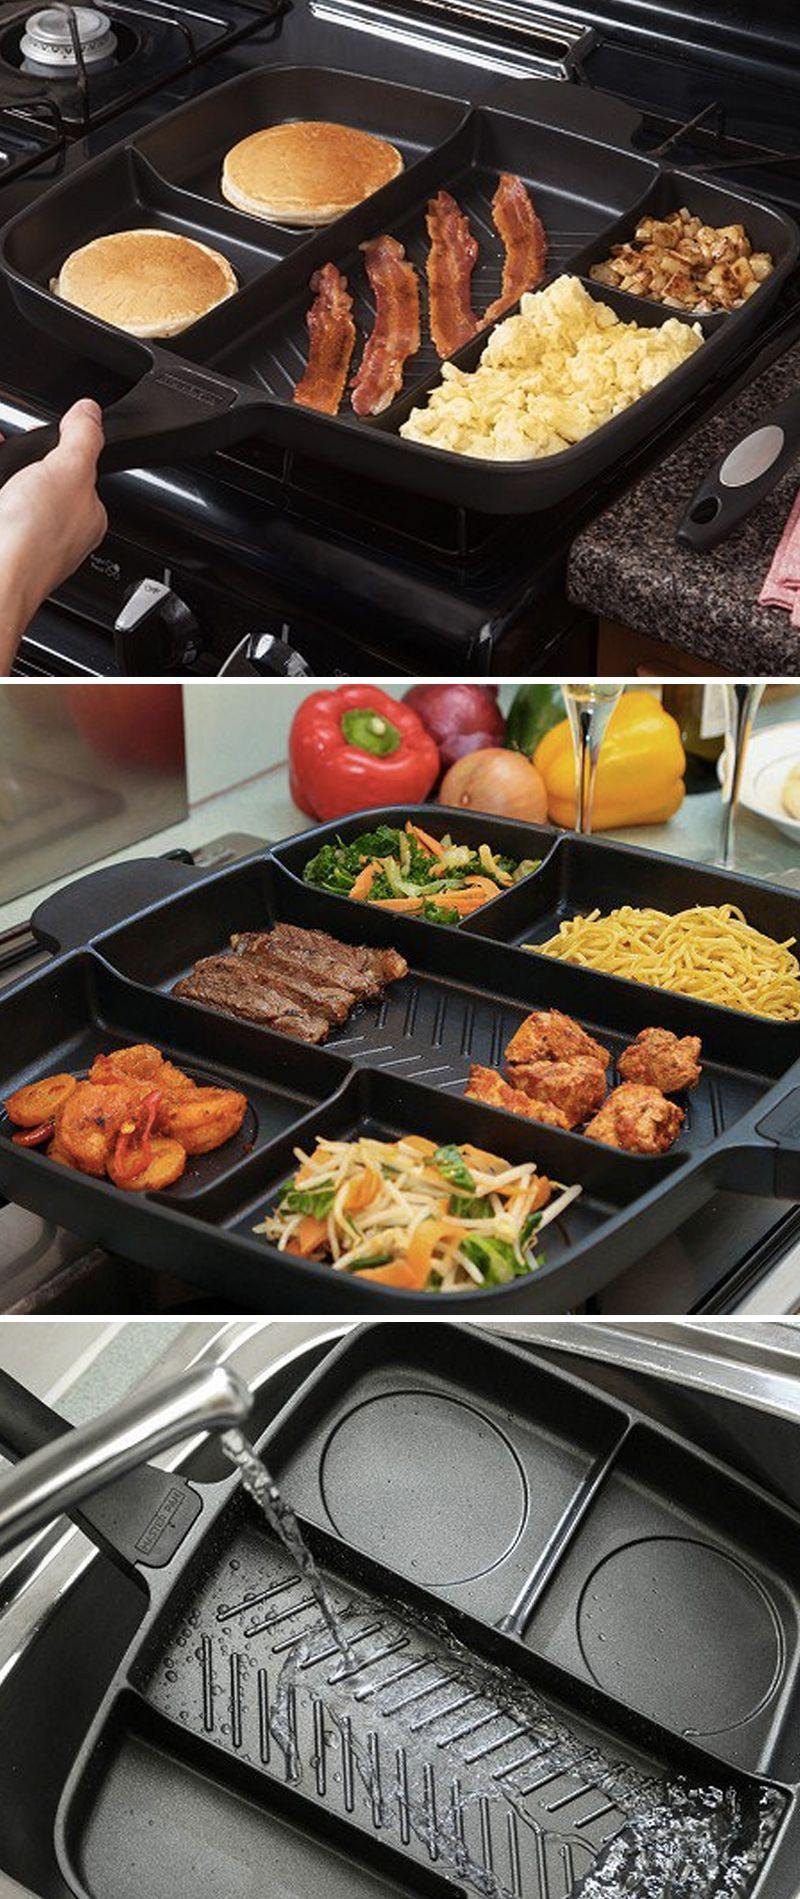 Cook 5 courses. Wash 1 pan. Make a full meal with minimal, one-pan cleanup. The MasterPan is a sectioned frying pan that lets you cook five different foods at once.